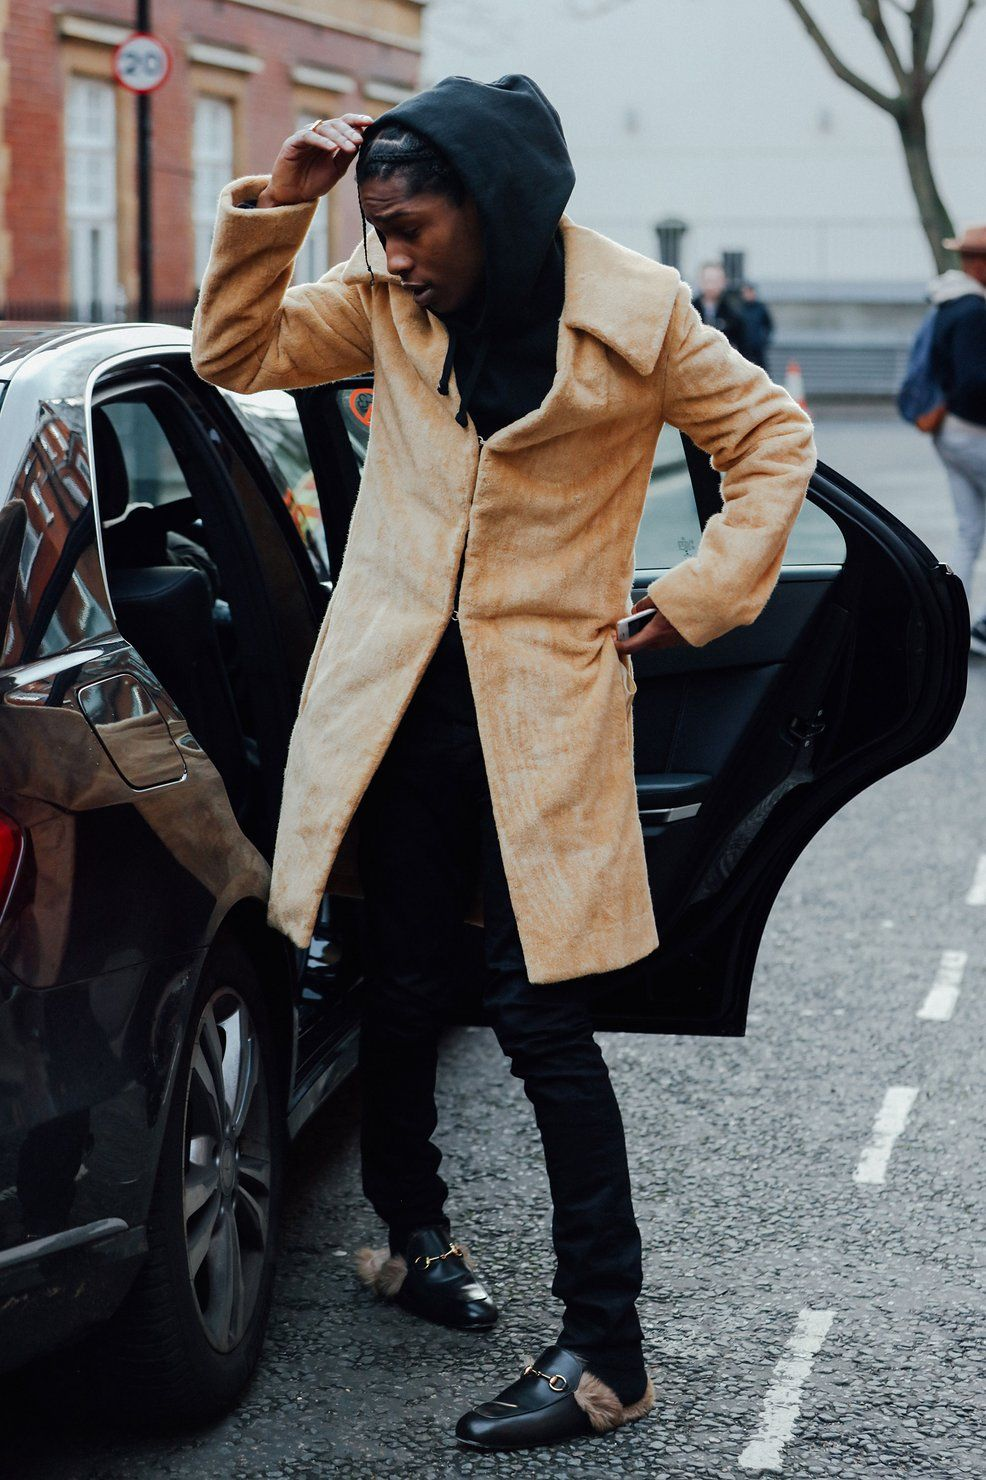 The best street style pics from the fall menus shows street